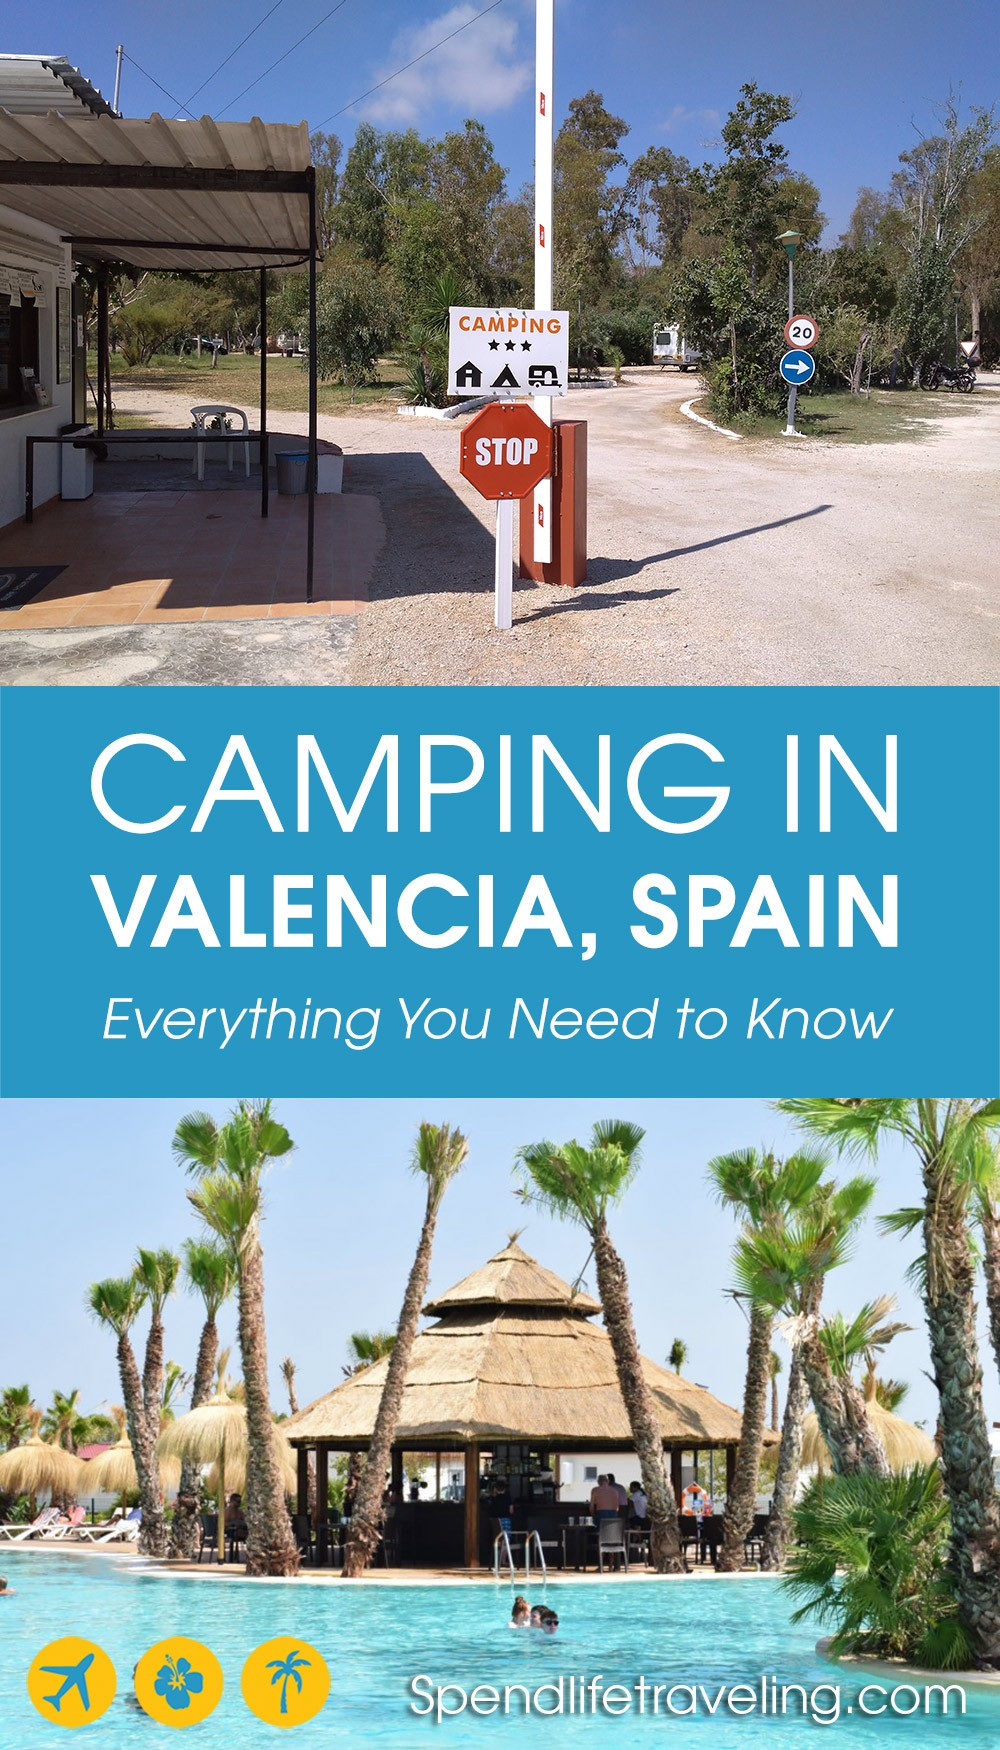 Everything you need to know about camping in Valencia